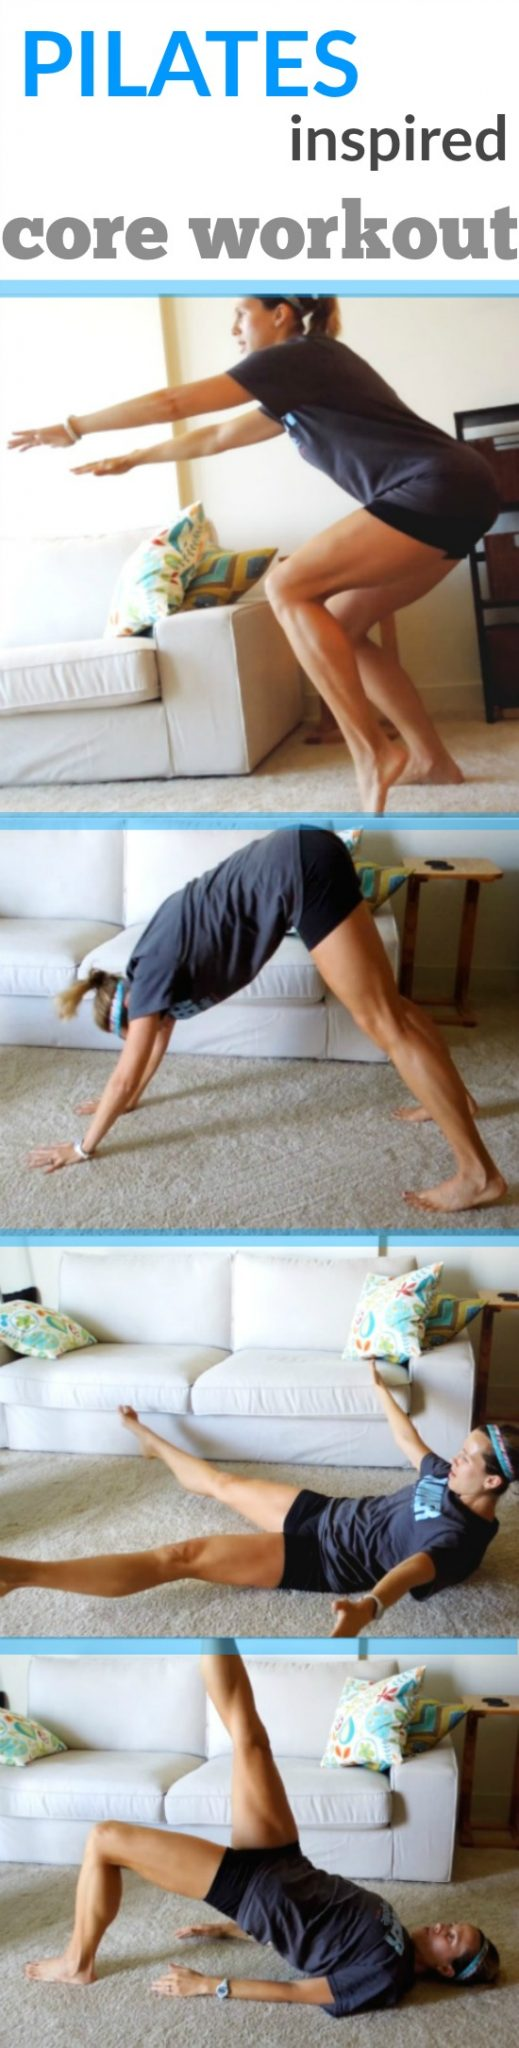 Strengthen your Core with this Pilates inspired ab workout - it will make you a better runner!